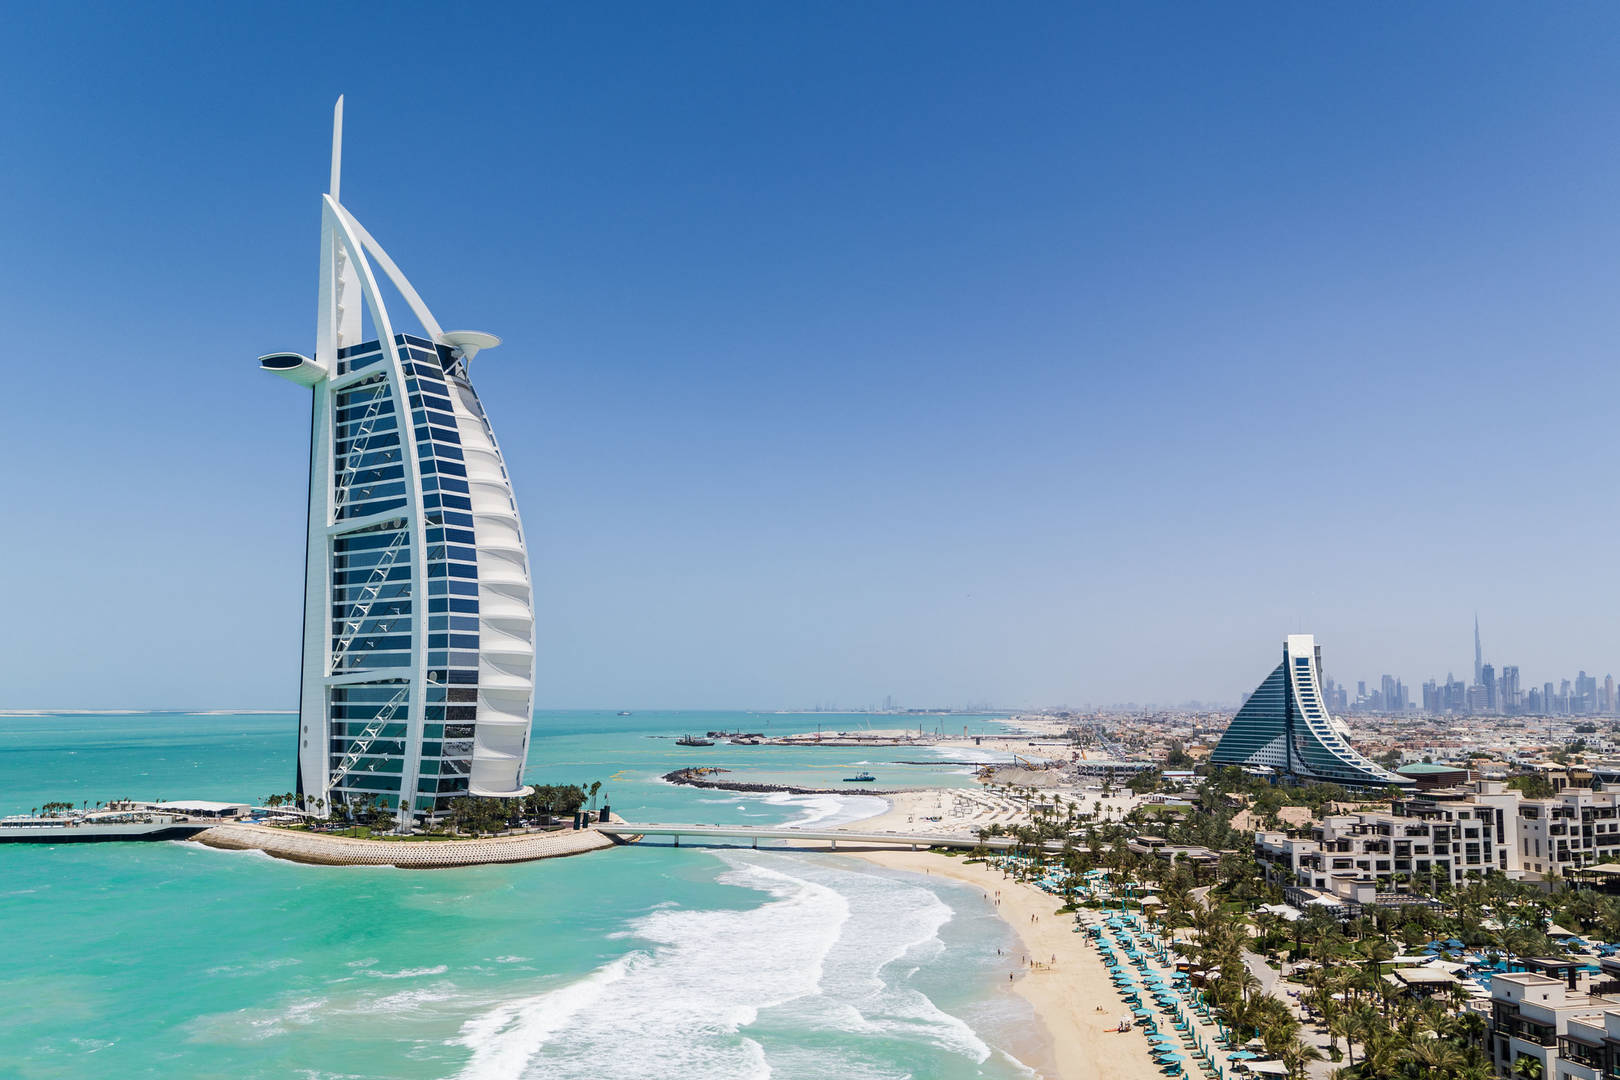 15 Amazing Facts About Burj Al Arab Jumeirah